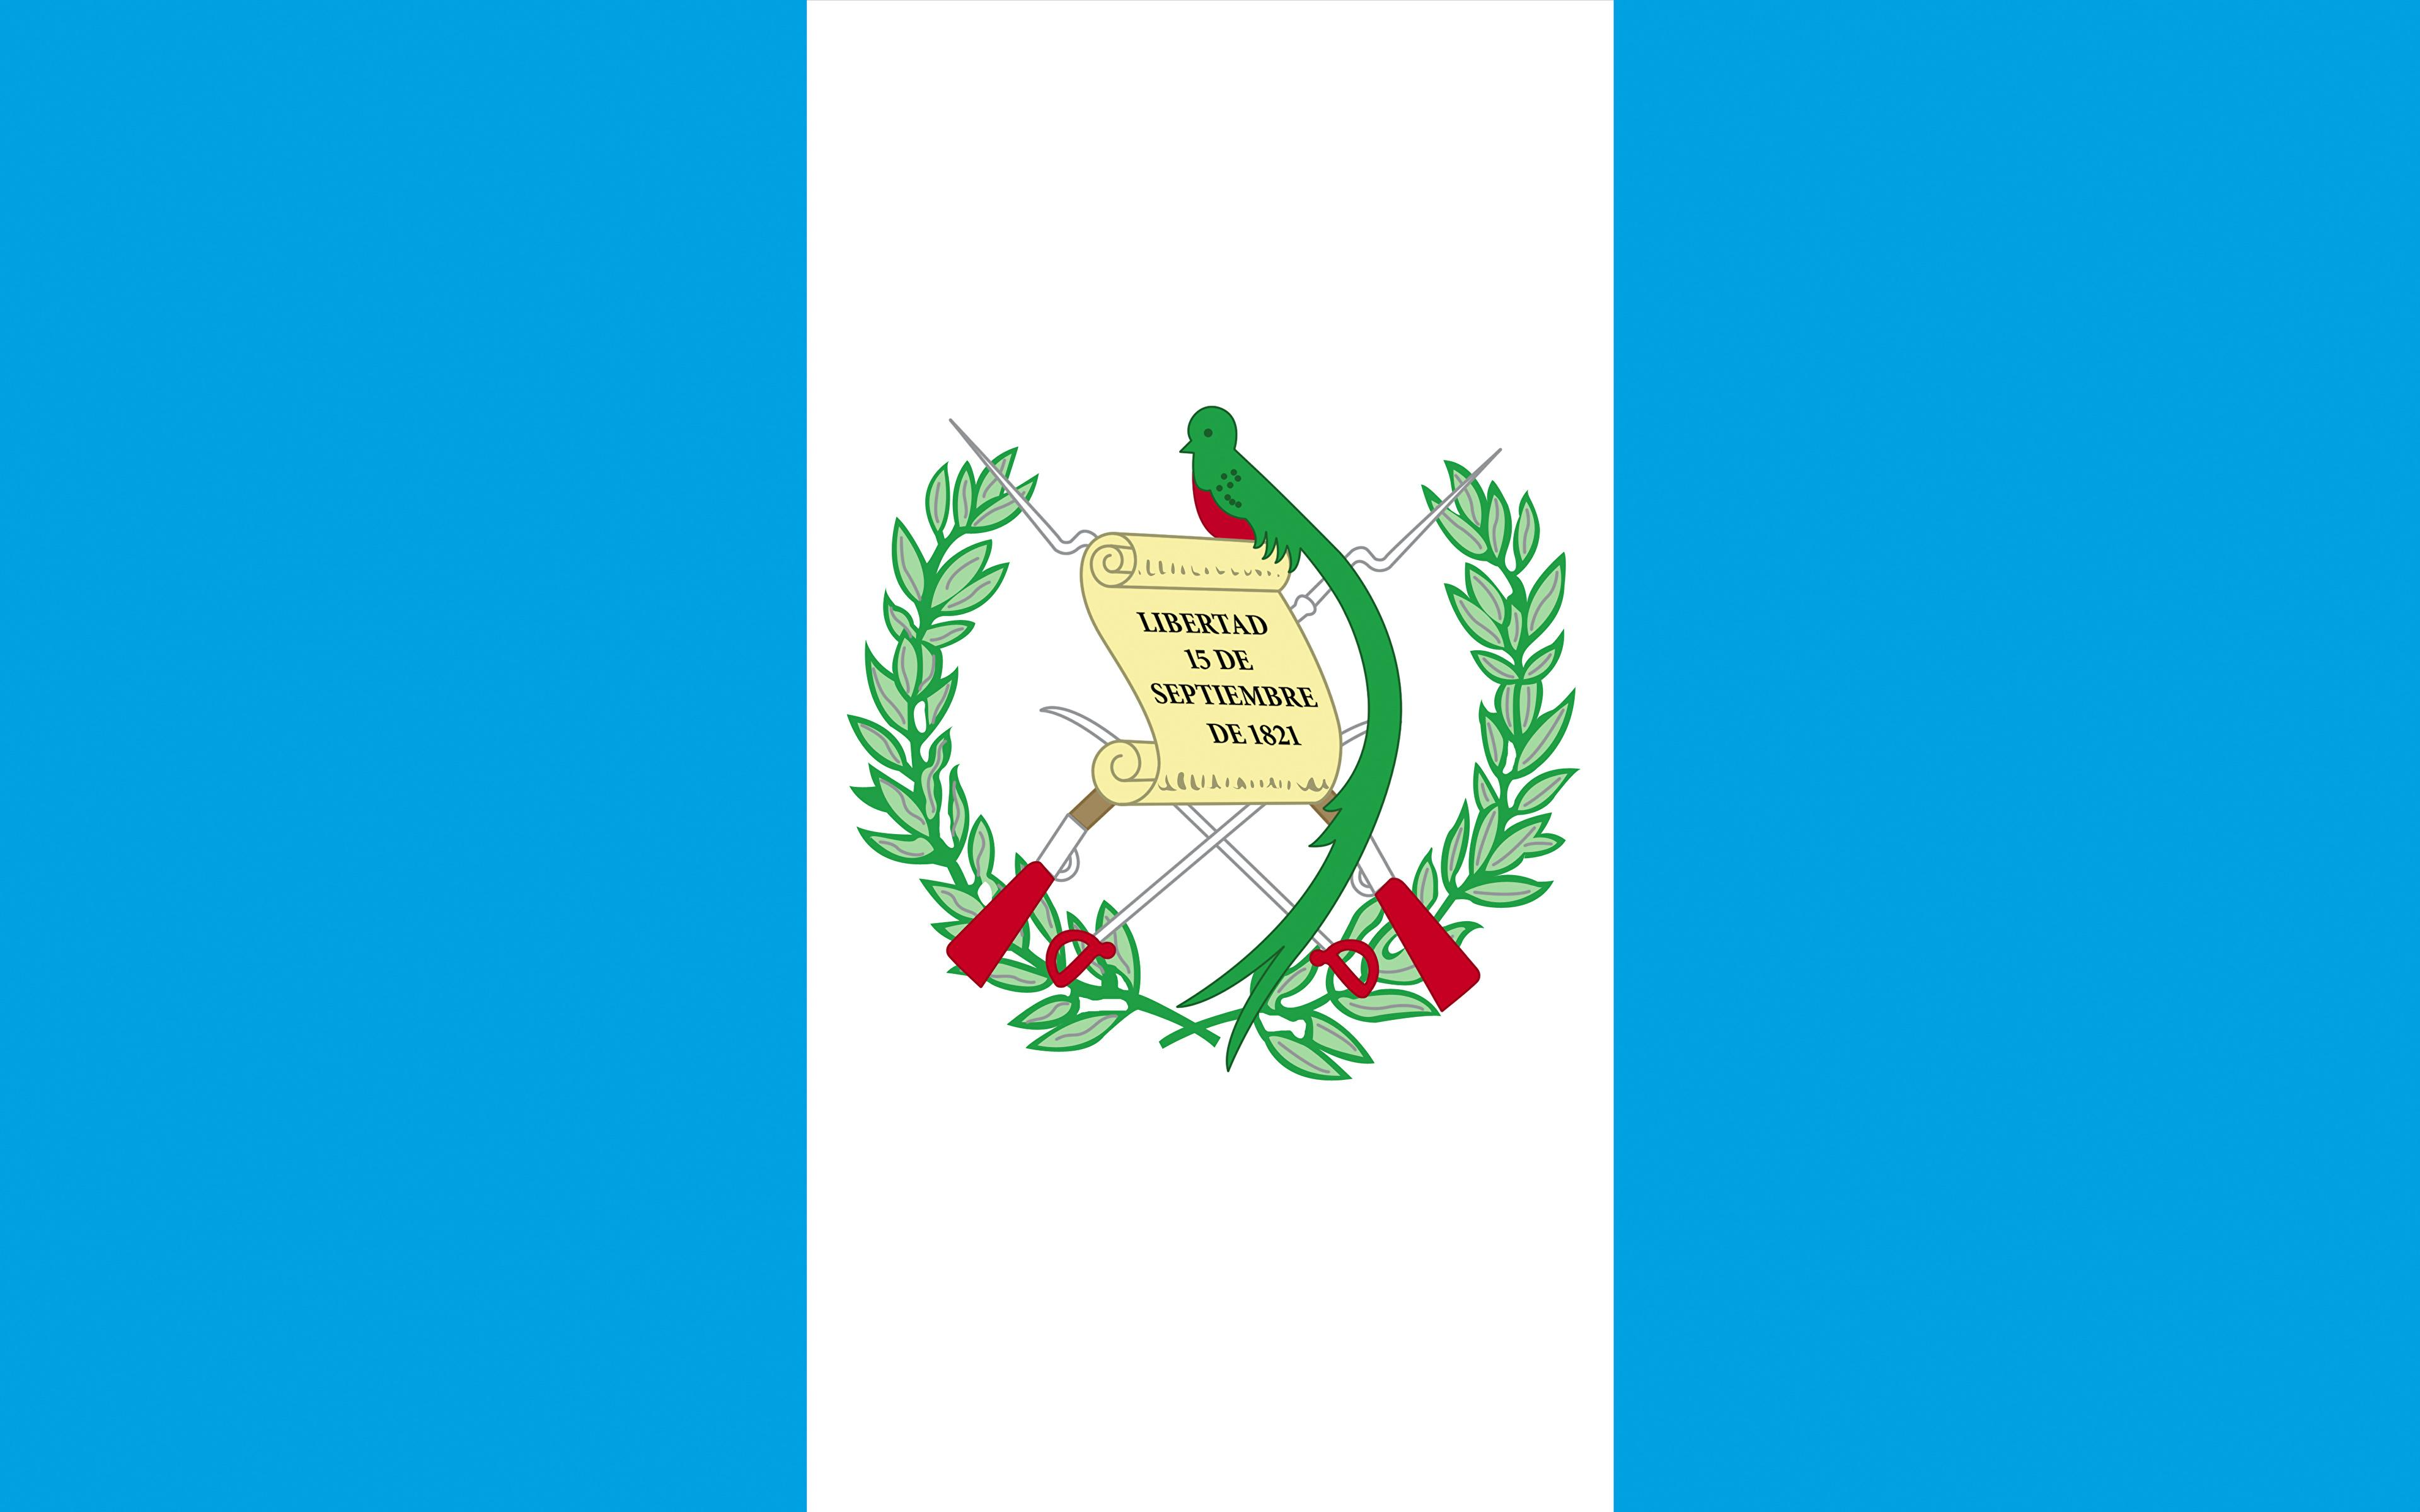 Image Guatemala Flag Stripes 3840x2400